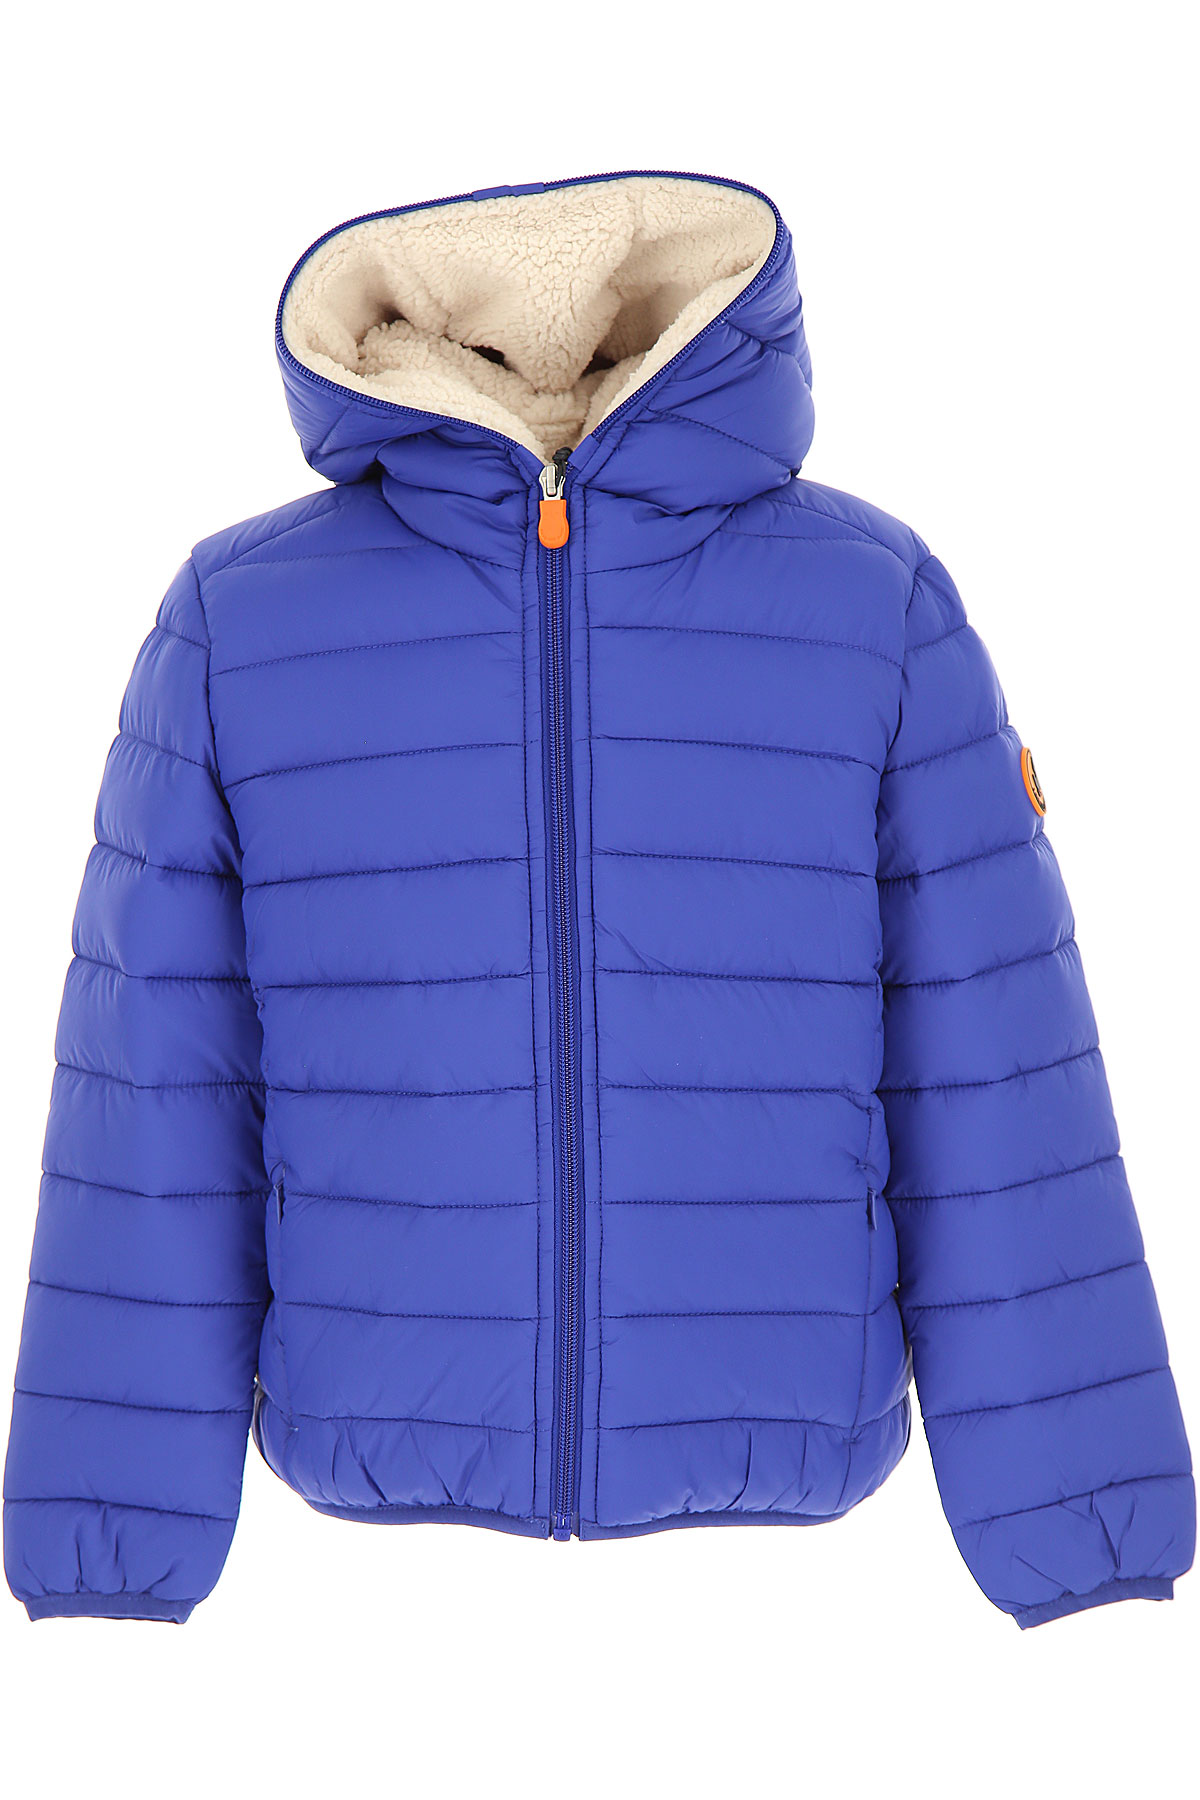 Save the Duck Boys Down Jacket for Kids, Puffer Ski Jacket On Sale, Twilight Blue, Nylon, 2019, 10Y 8Y